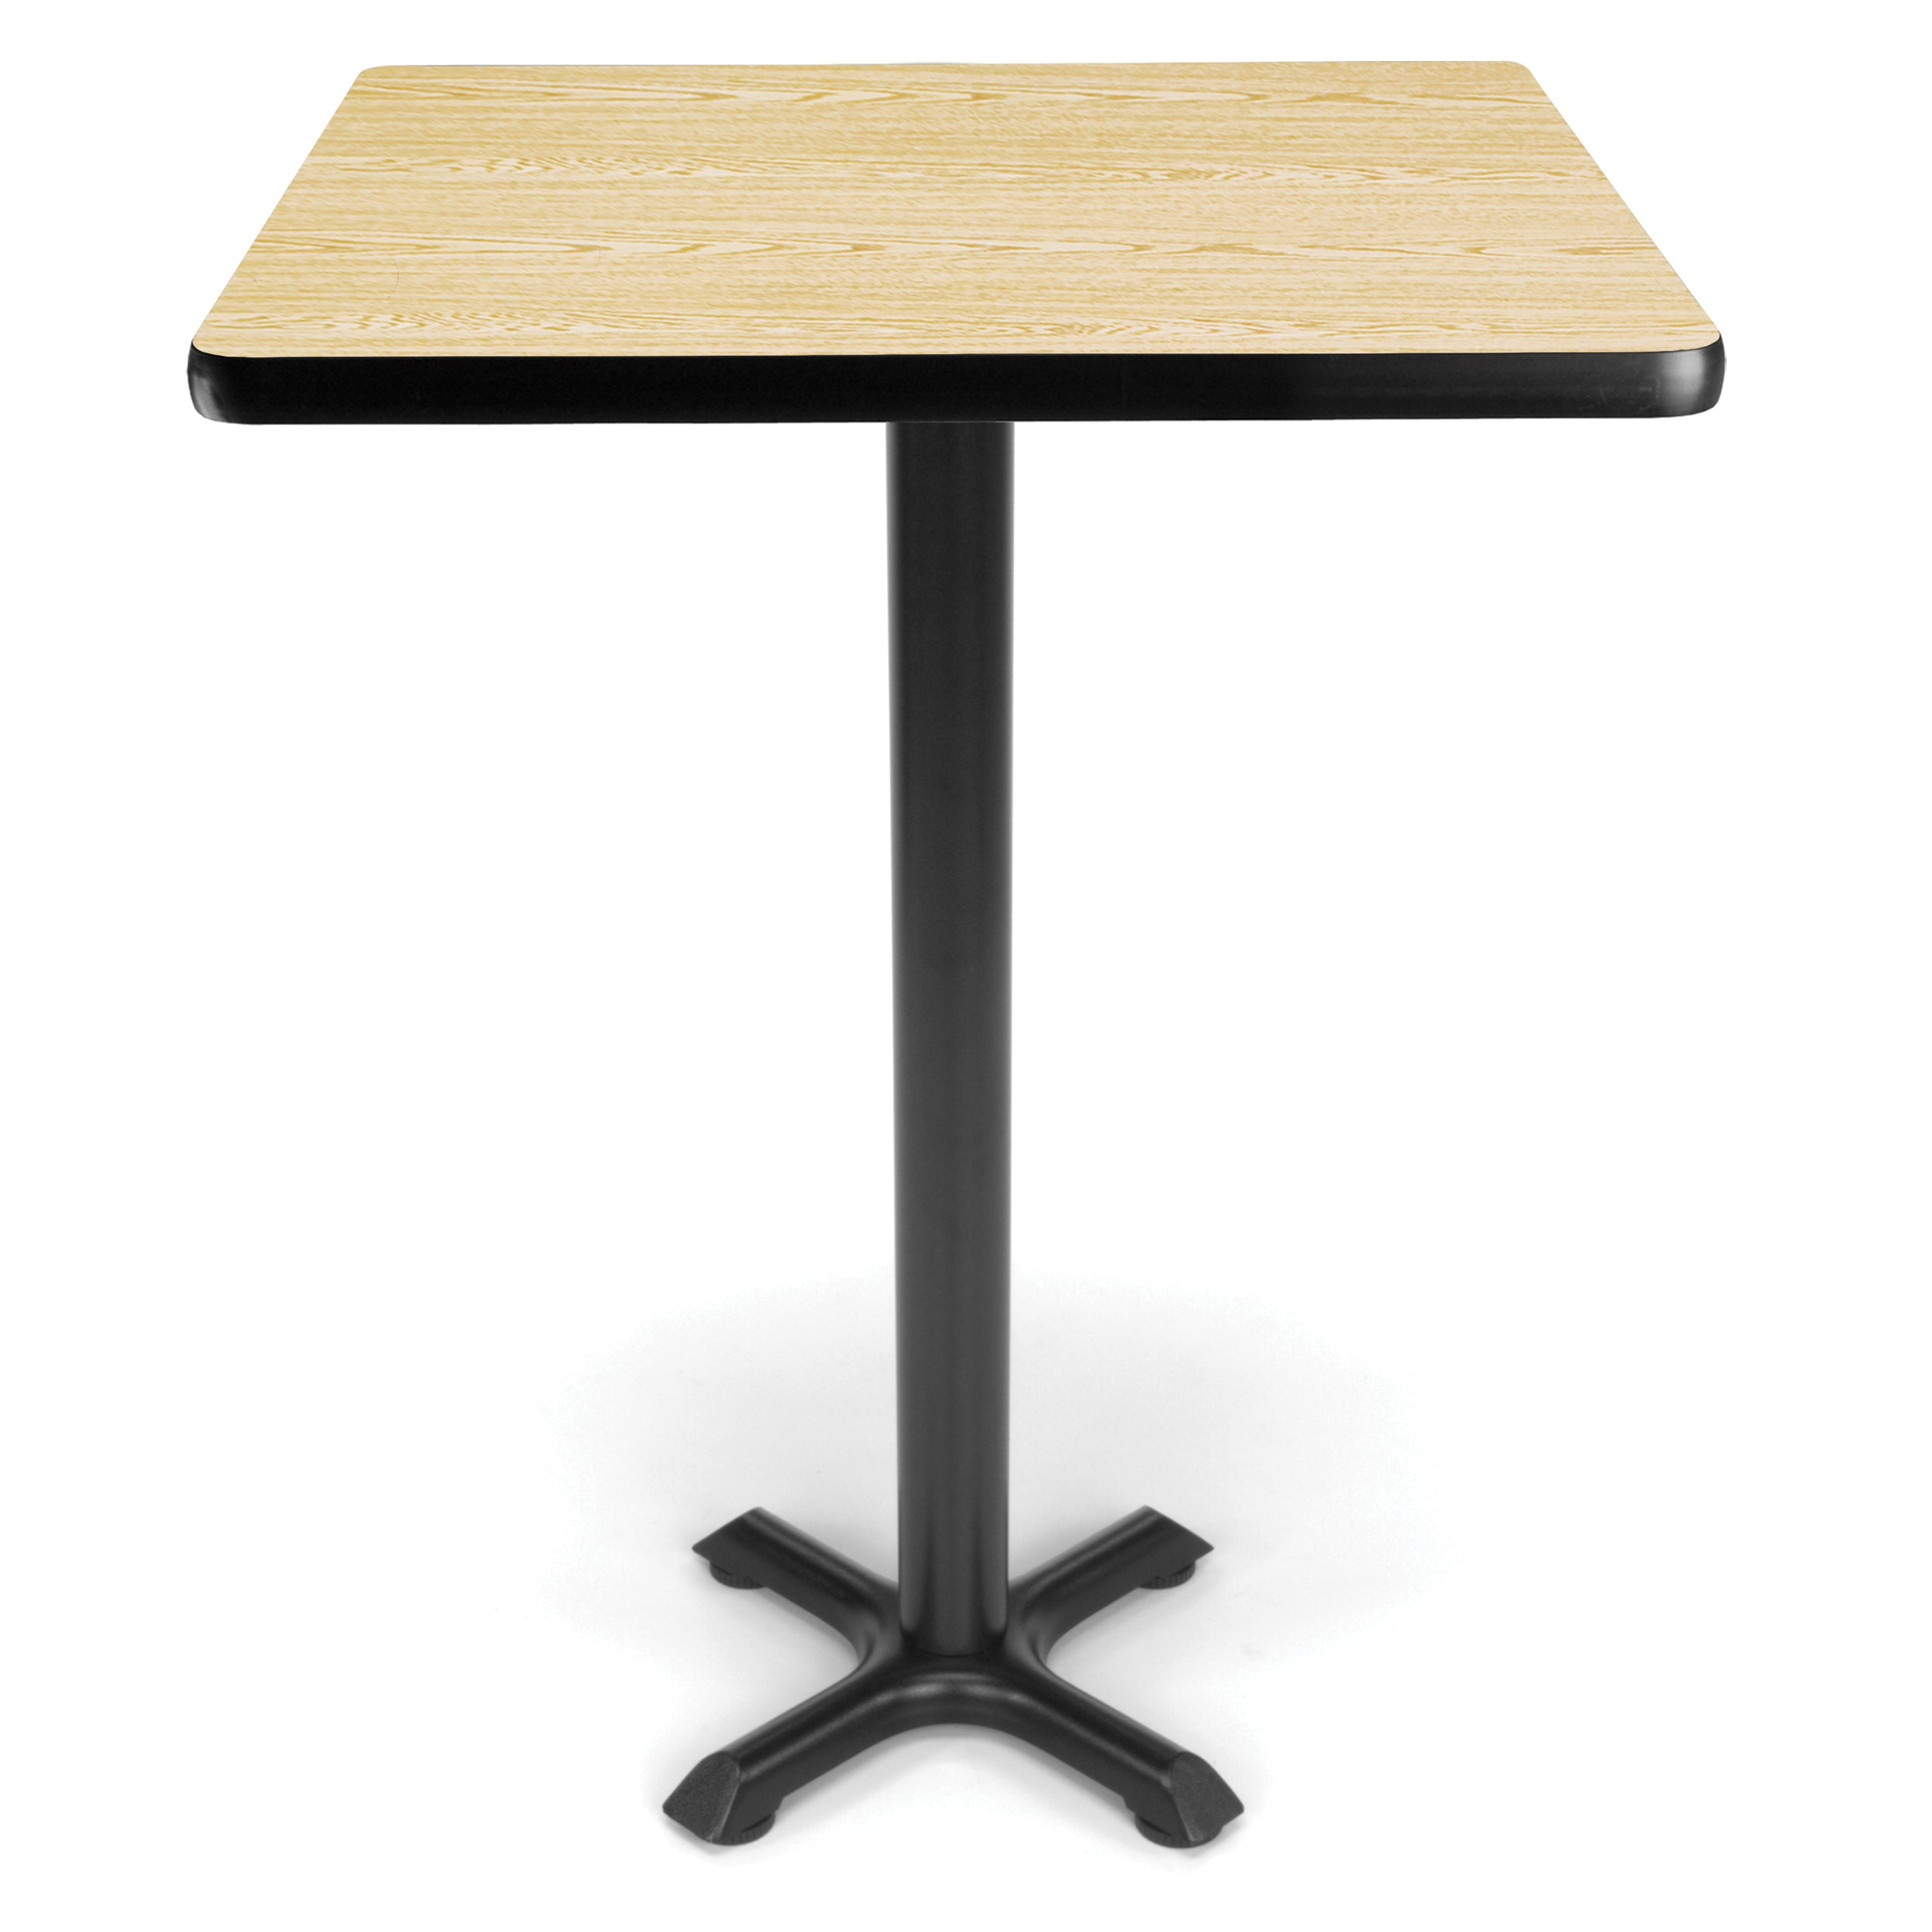 Ofminc Model XTC30SQ Square Cafe Height Table with X Base 30 Inch